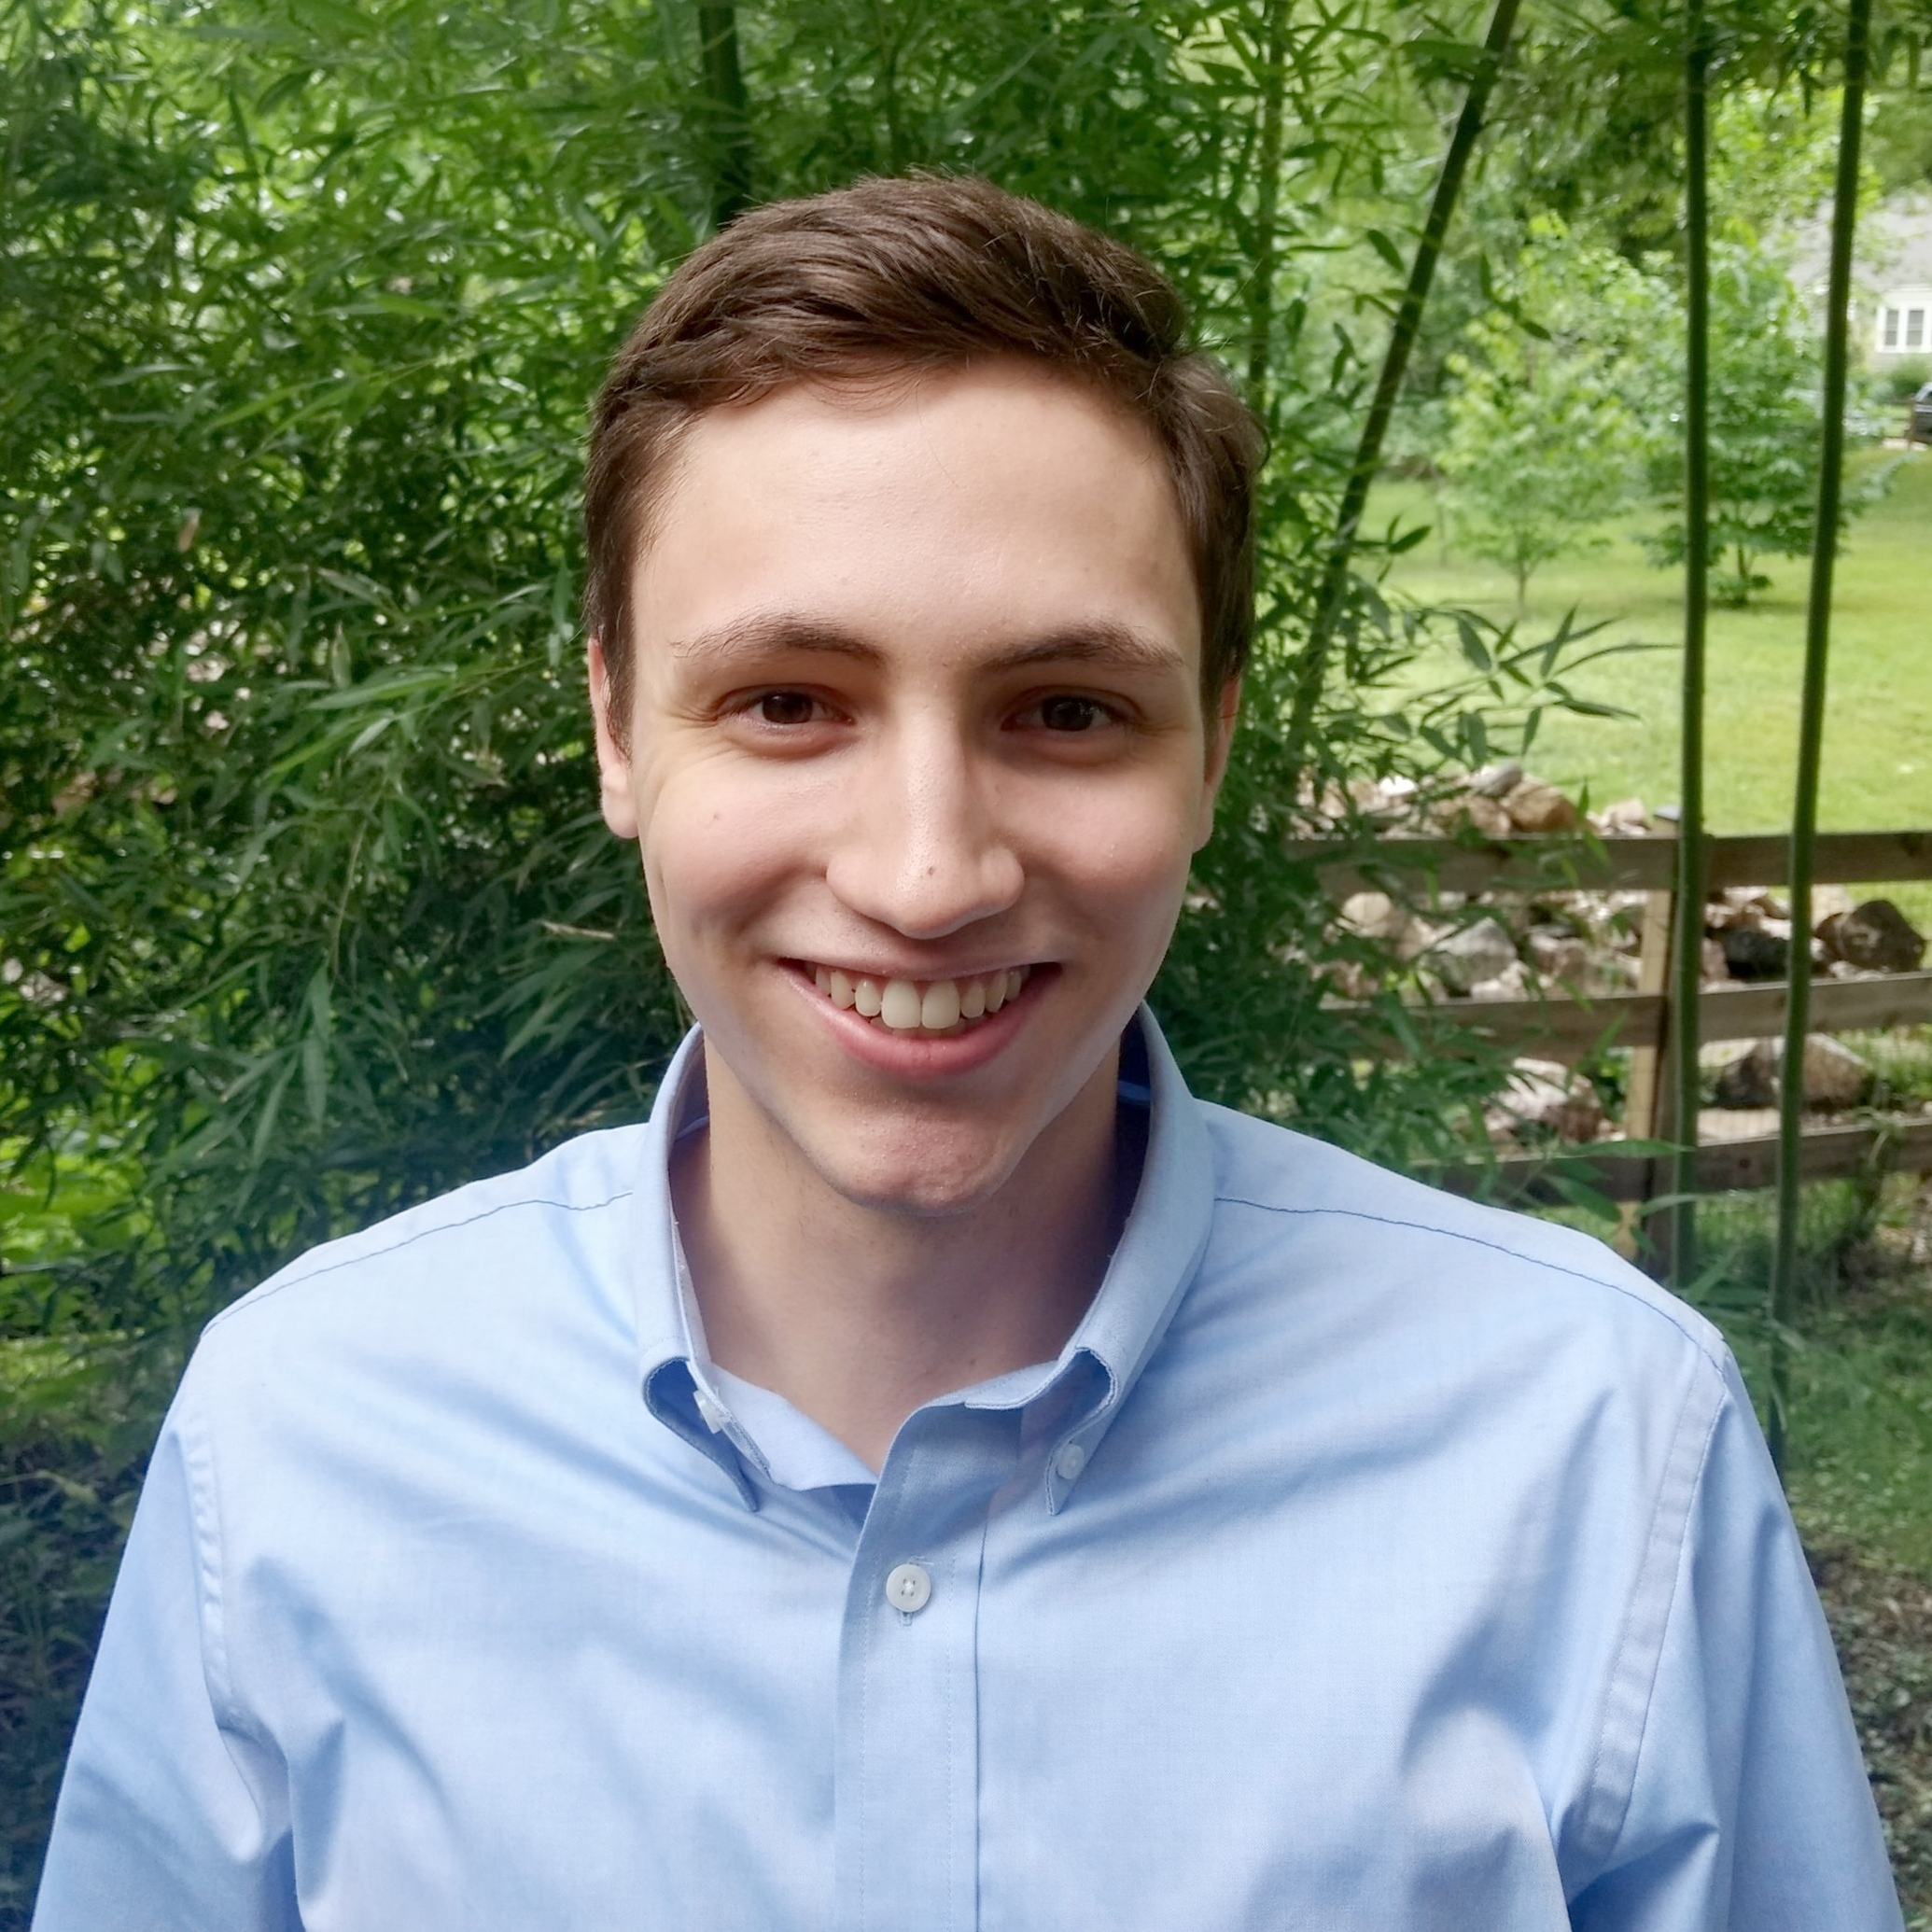 Andrew Hamby: Electrical Engineering Intern